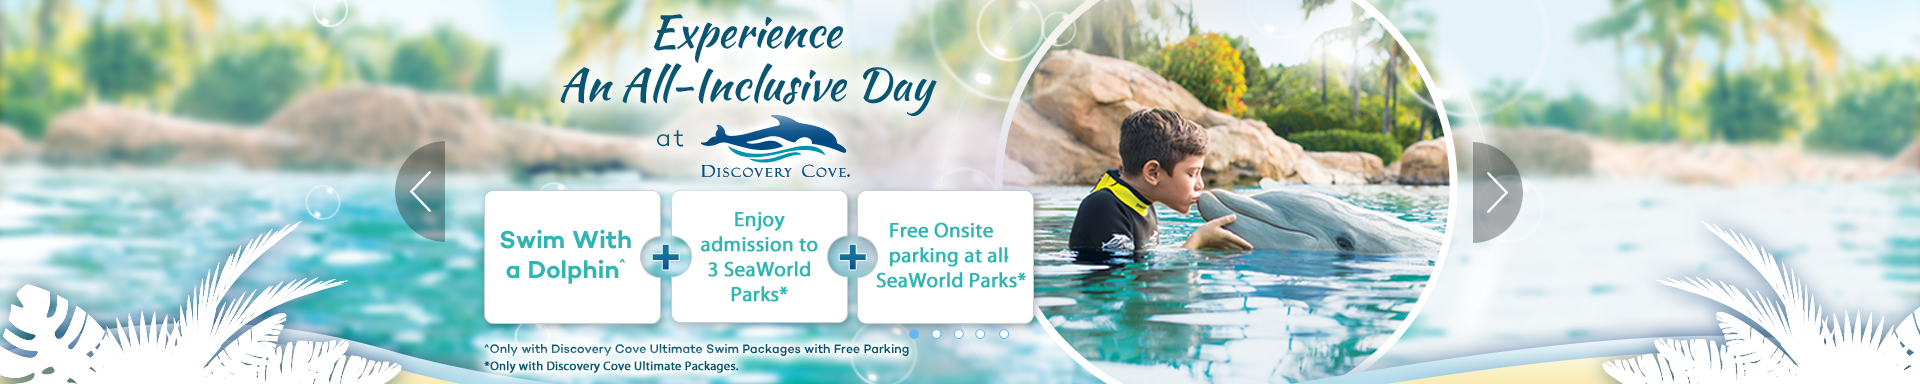 Experience An All-Inclusive Day At Discovery Cove